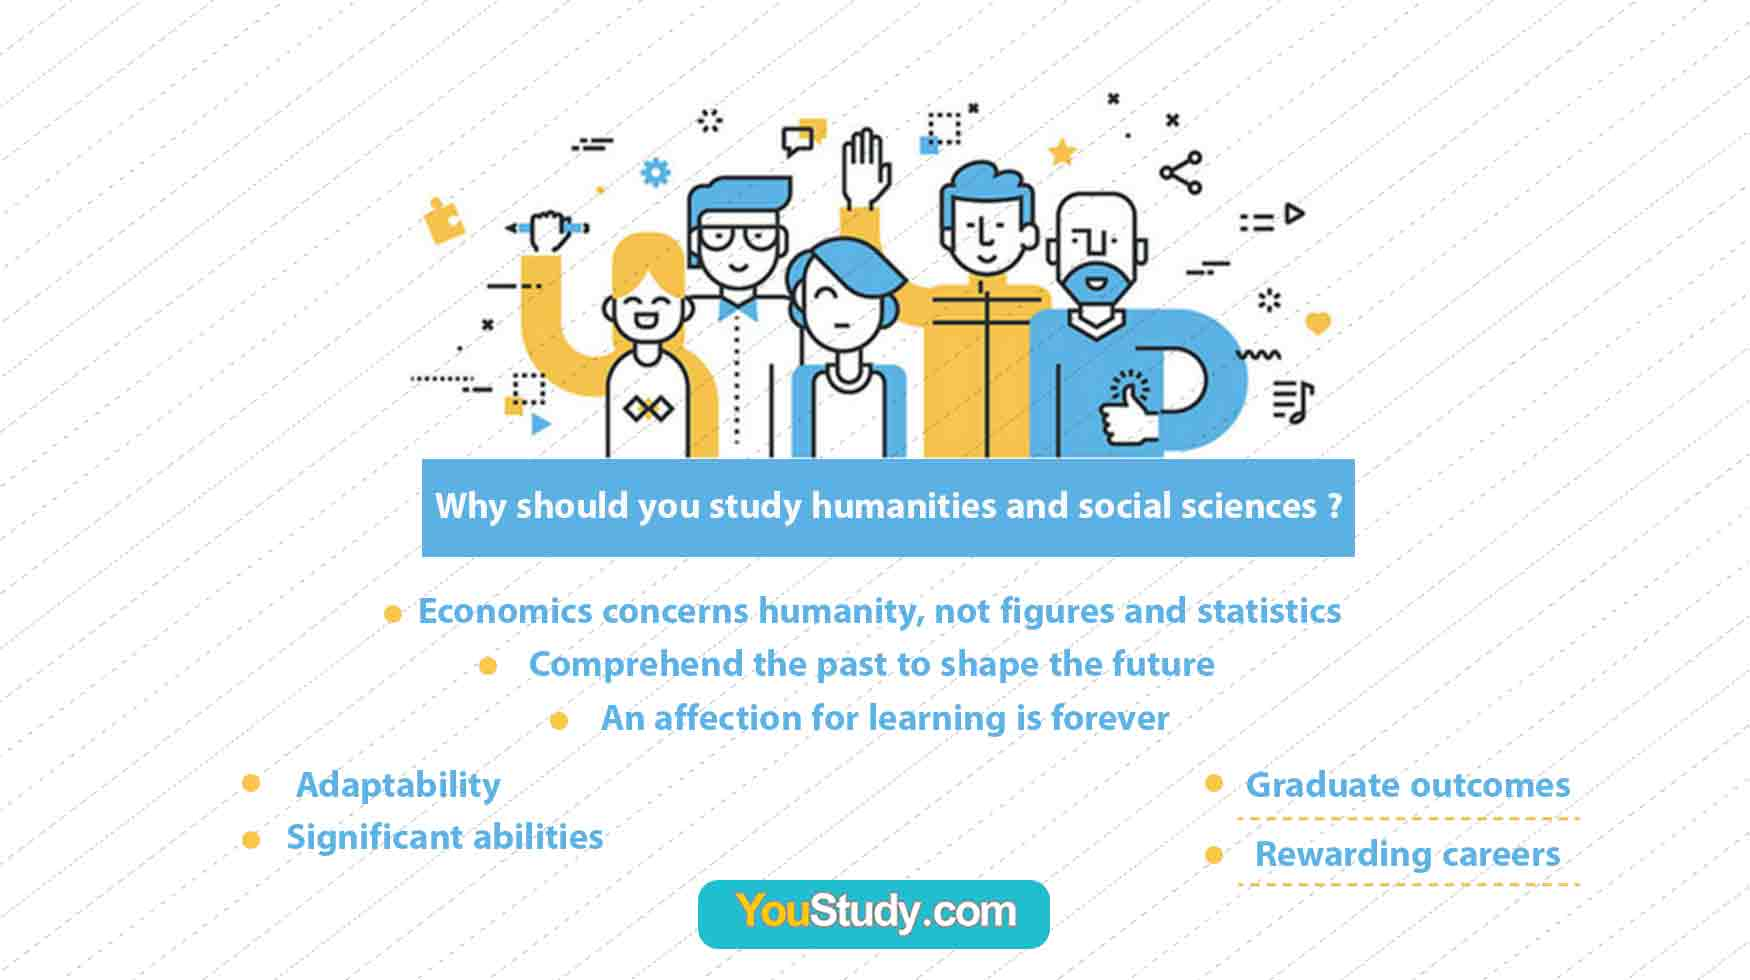 Why should you study humanities and social sciences